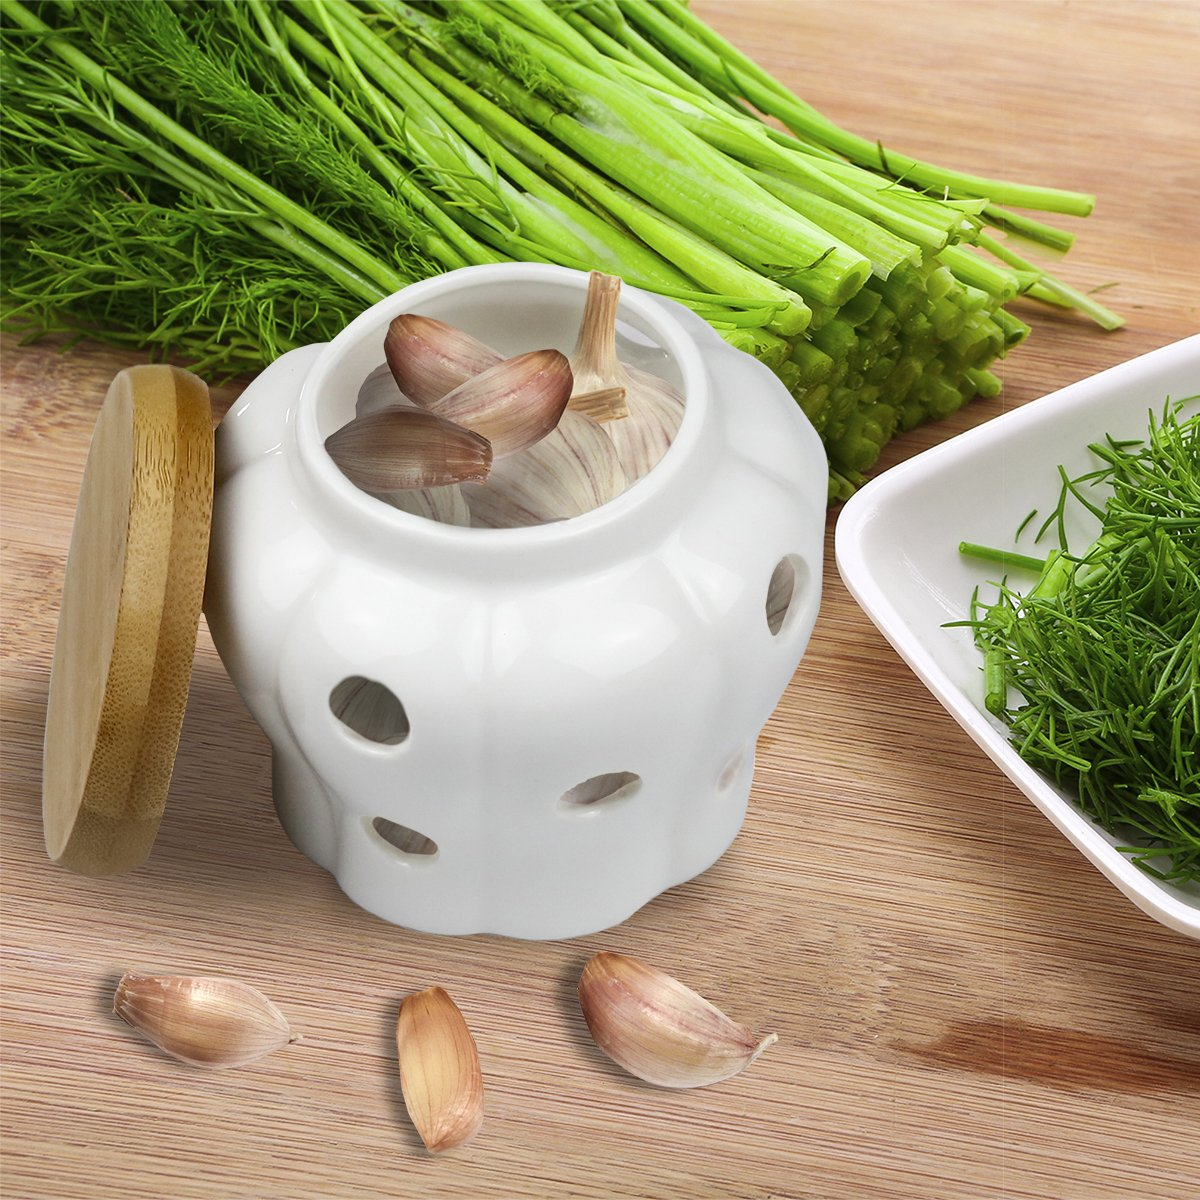 B079FQ5T42 Garlic Keeper, Bekmore Ceramic Garlic Storage Container Vented White Stoneware with Bamboo Lid 510o2GyjSaL